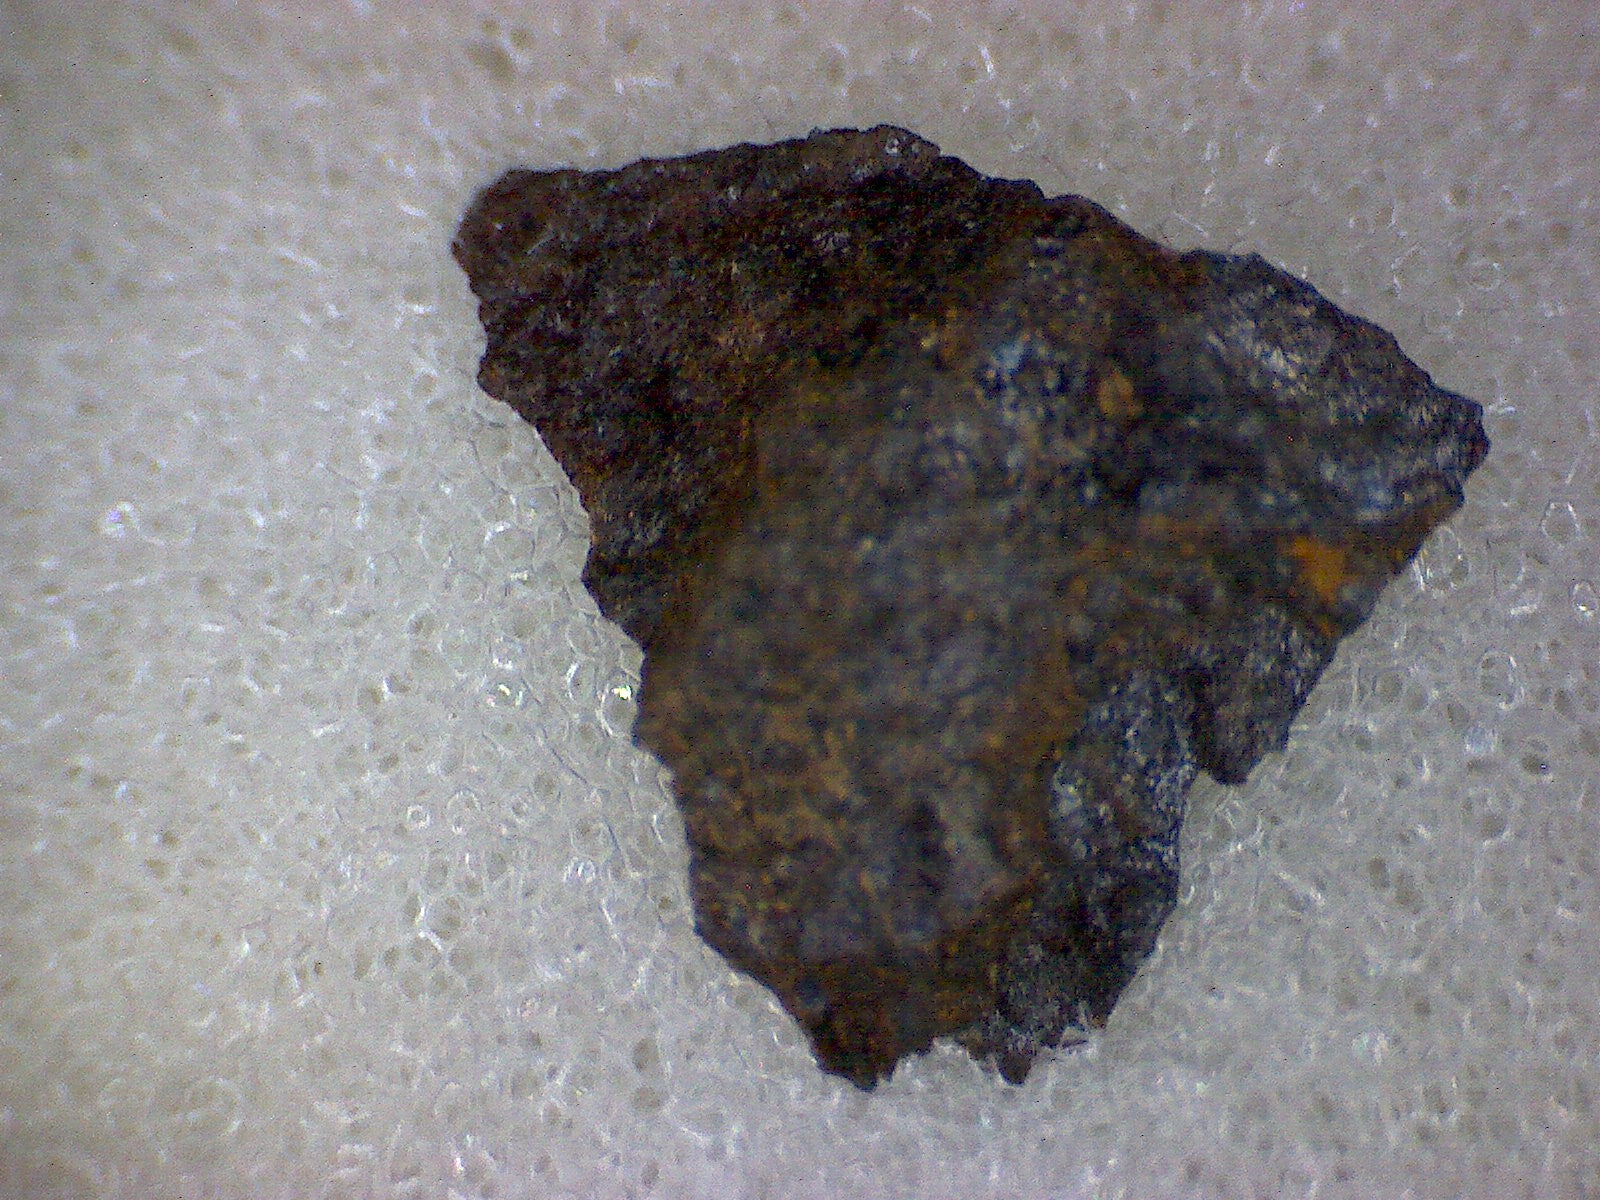 Northbranch Meteorite Specimen